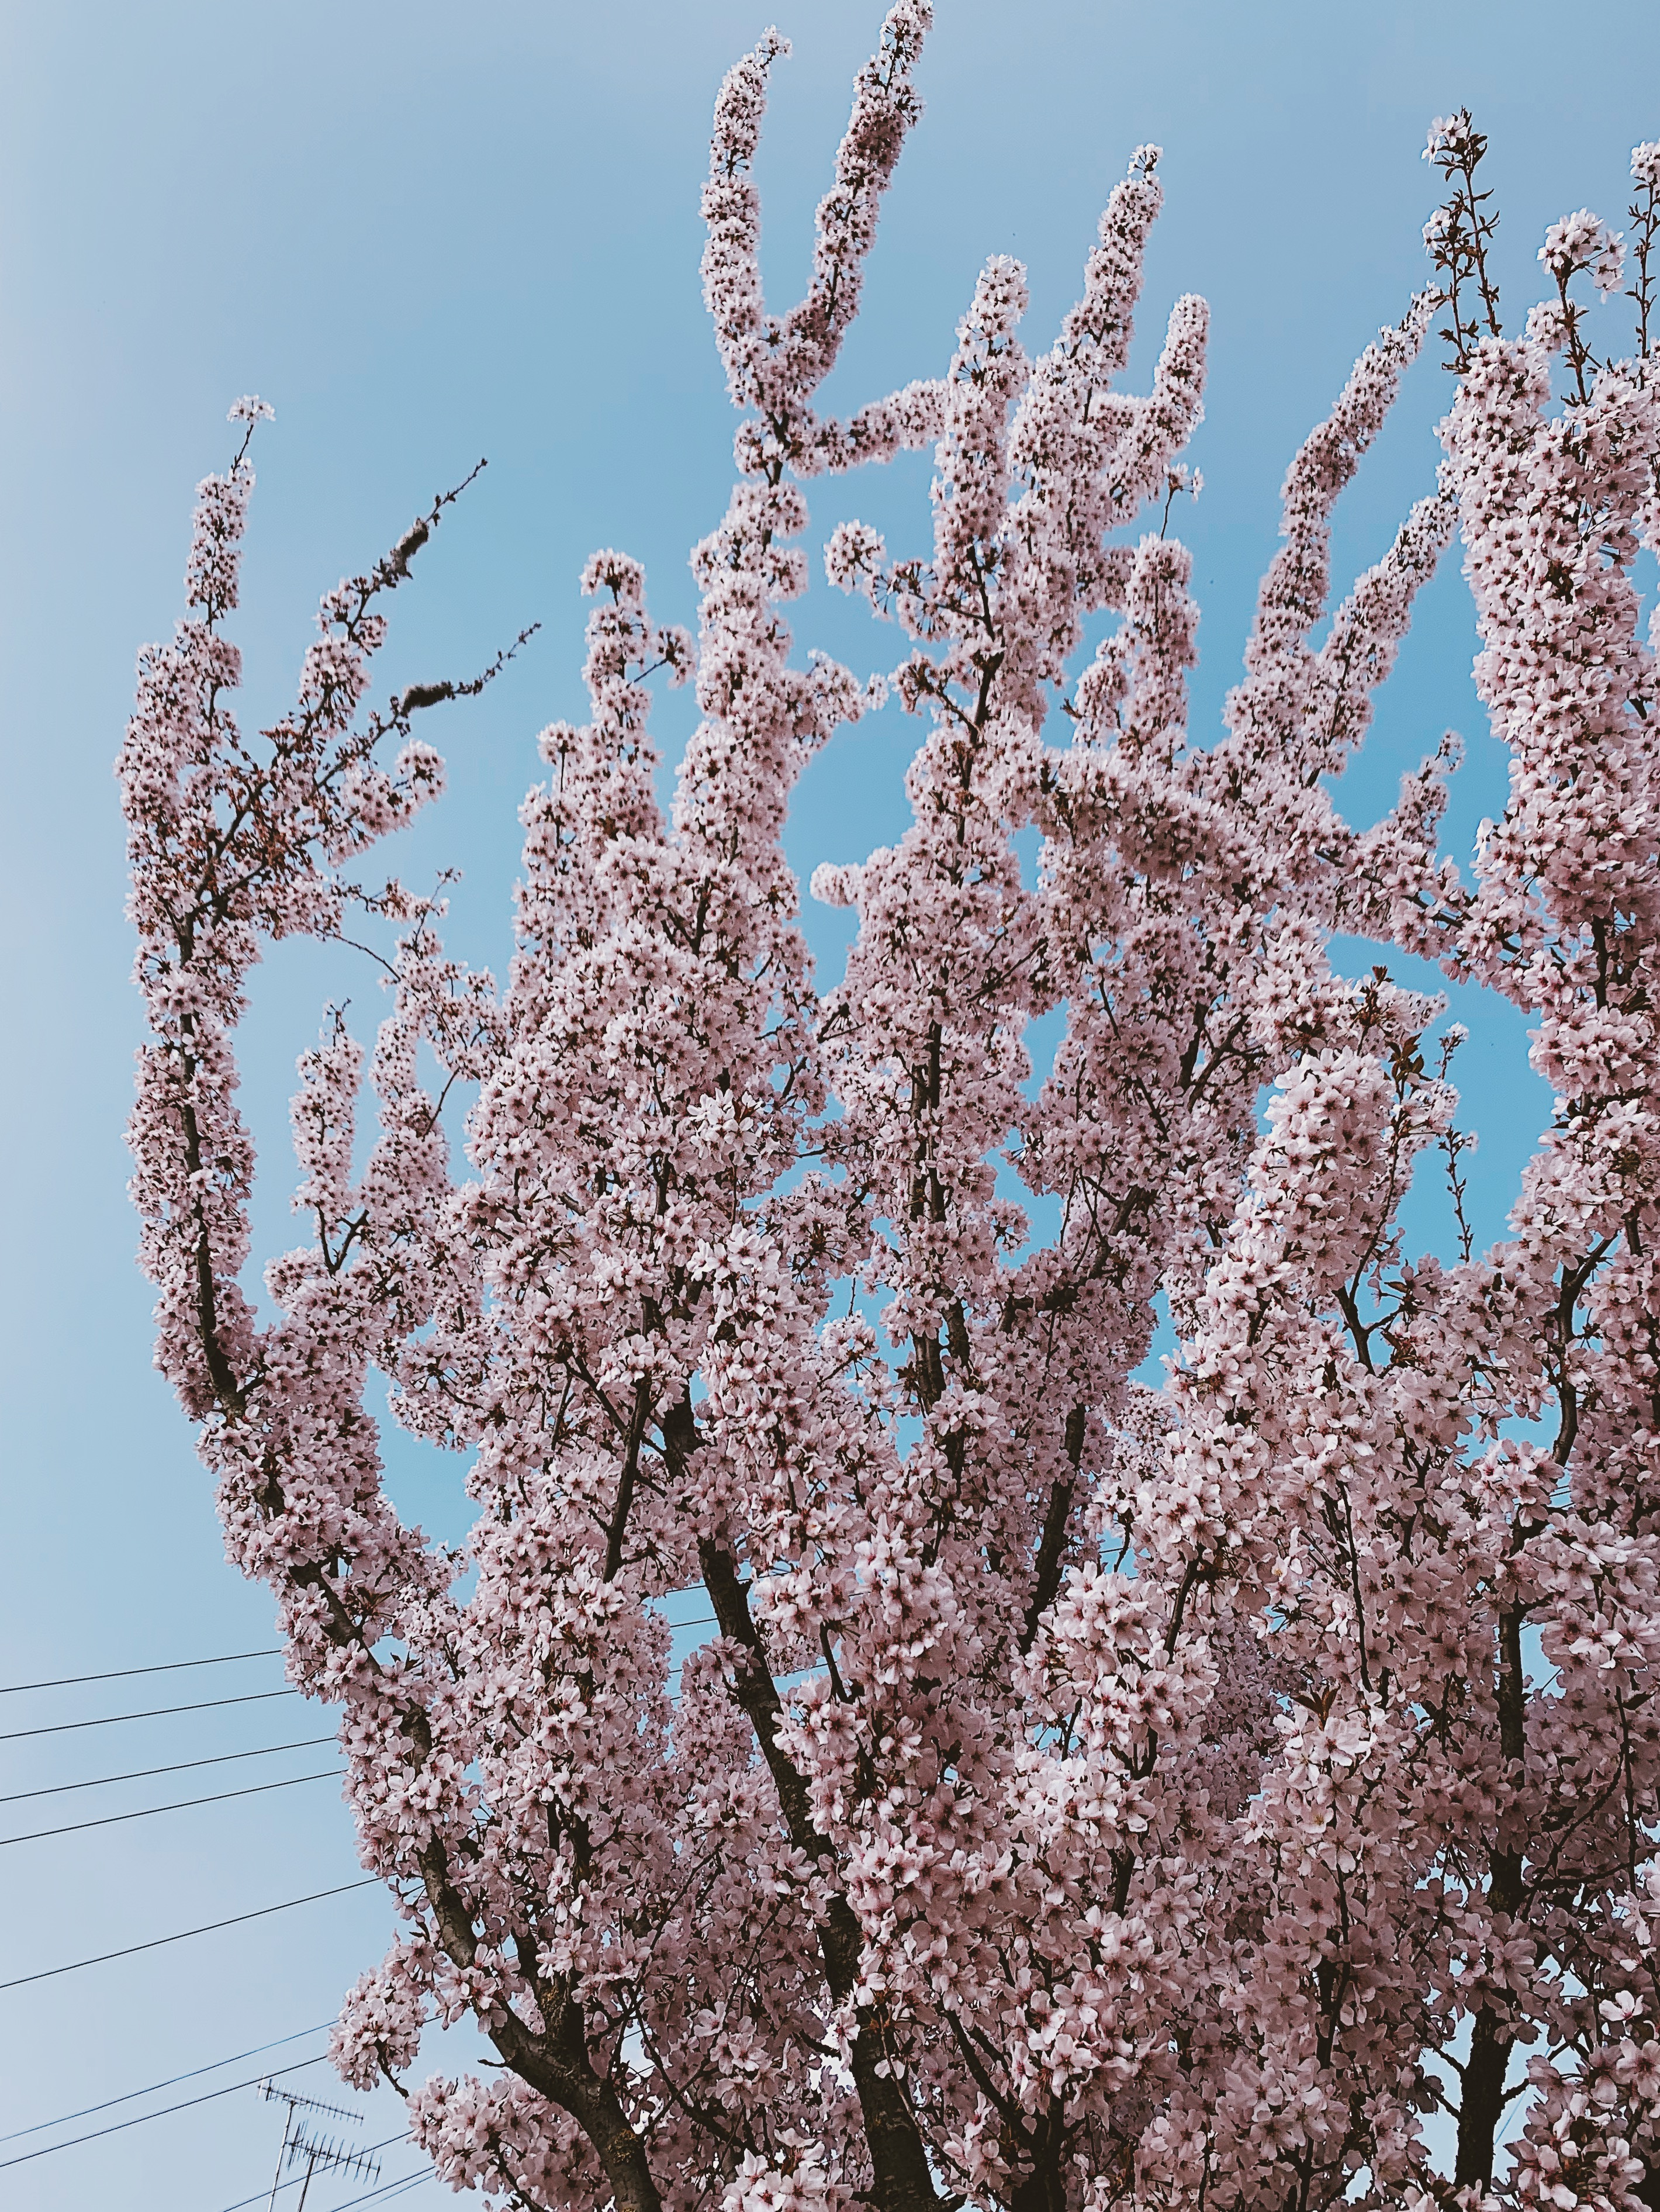 Pink blossom against blue sky